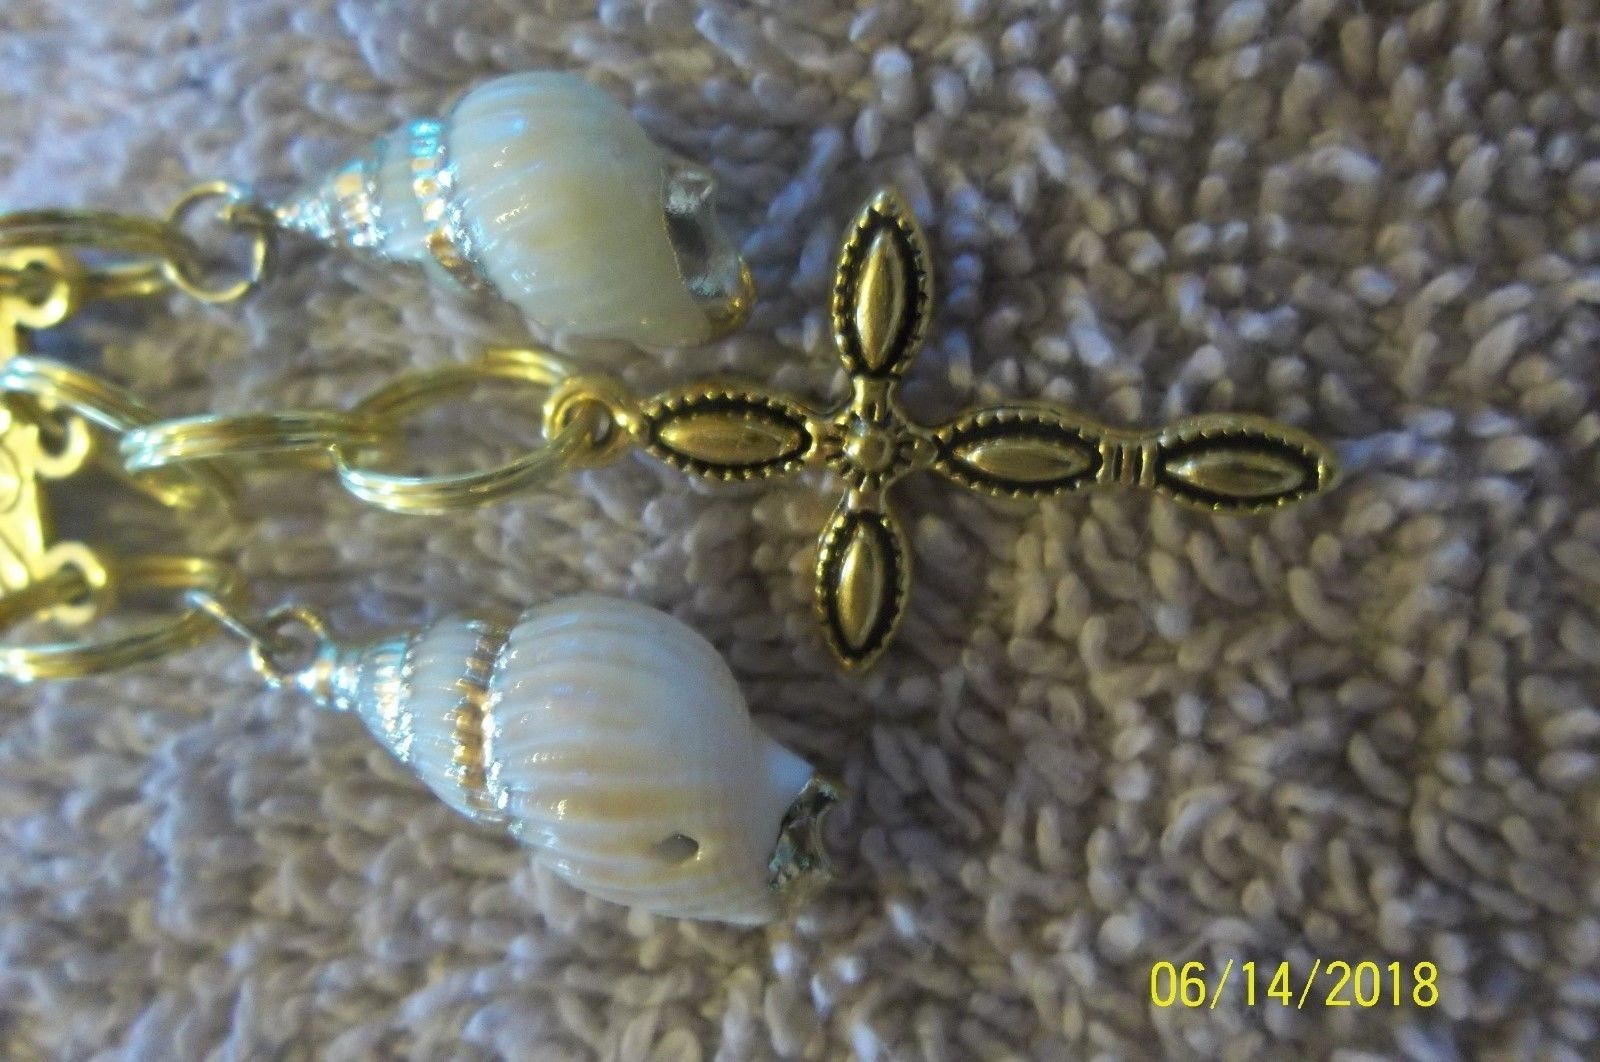 # purse jewelry gold color cross shell keychain backpack dangle charm #26 image 4